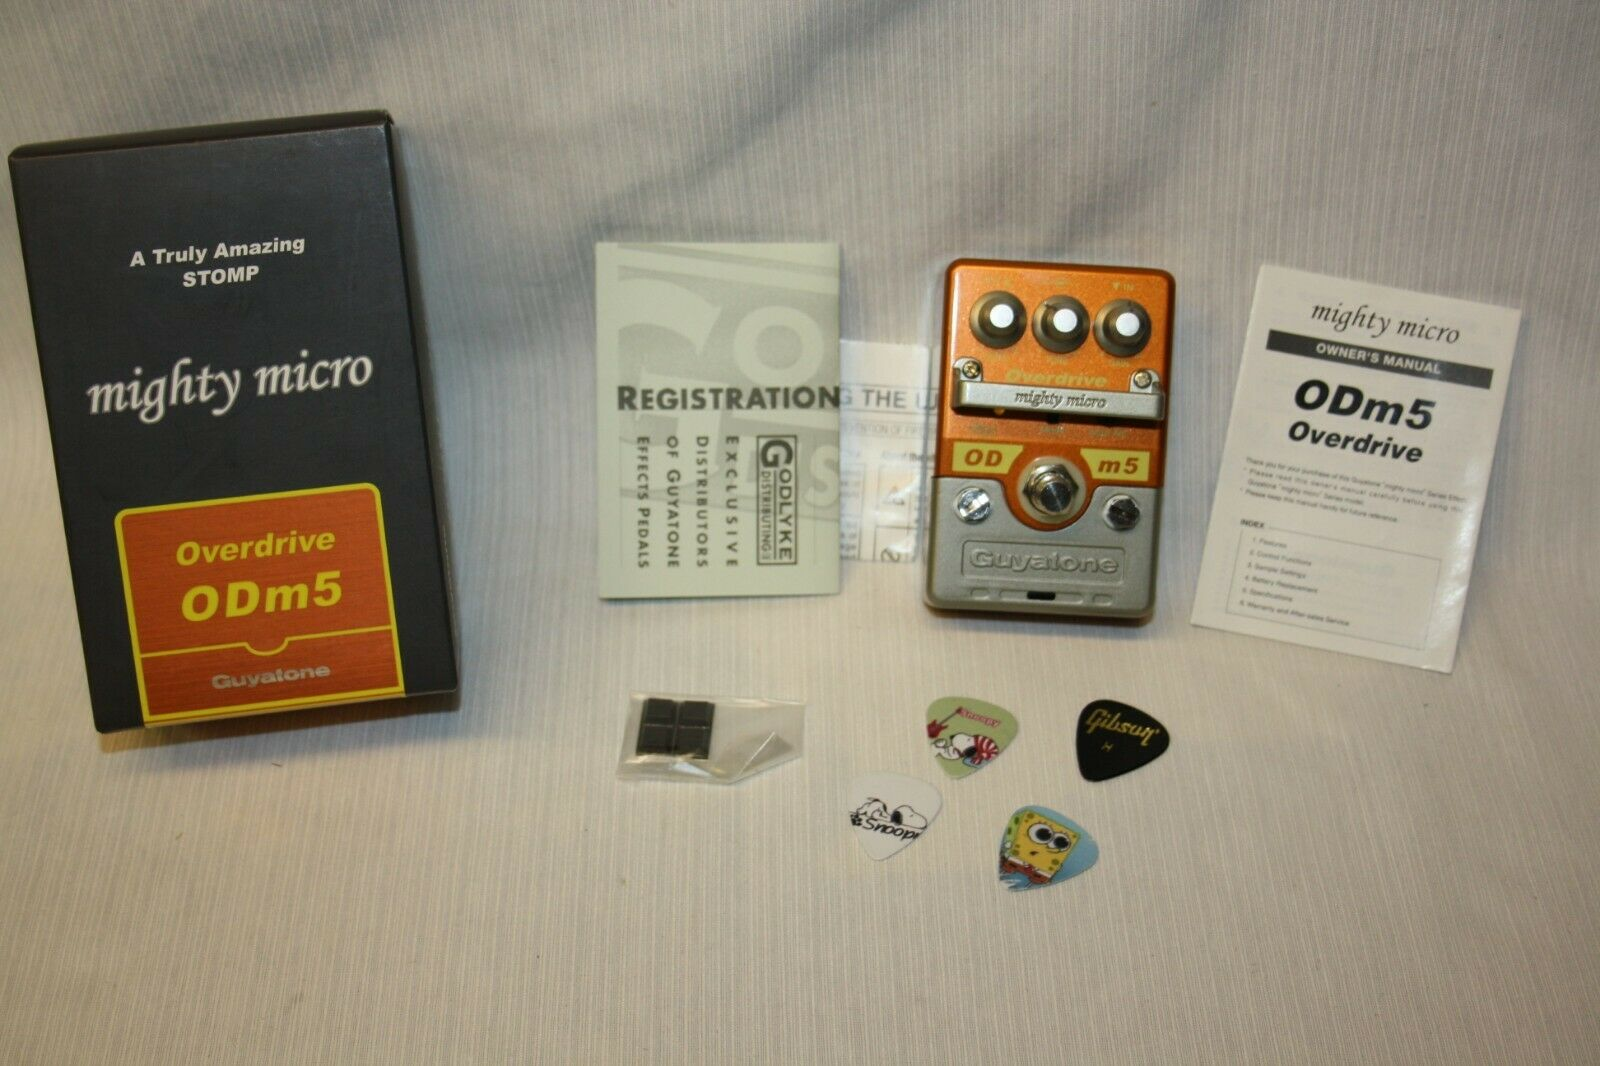 Guyatone ODm5 OVERDRIVE USED GUITAR EFFECTS PEDAL